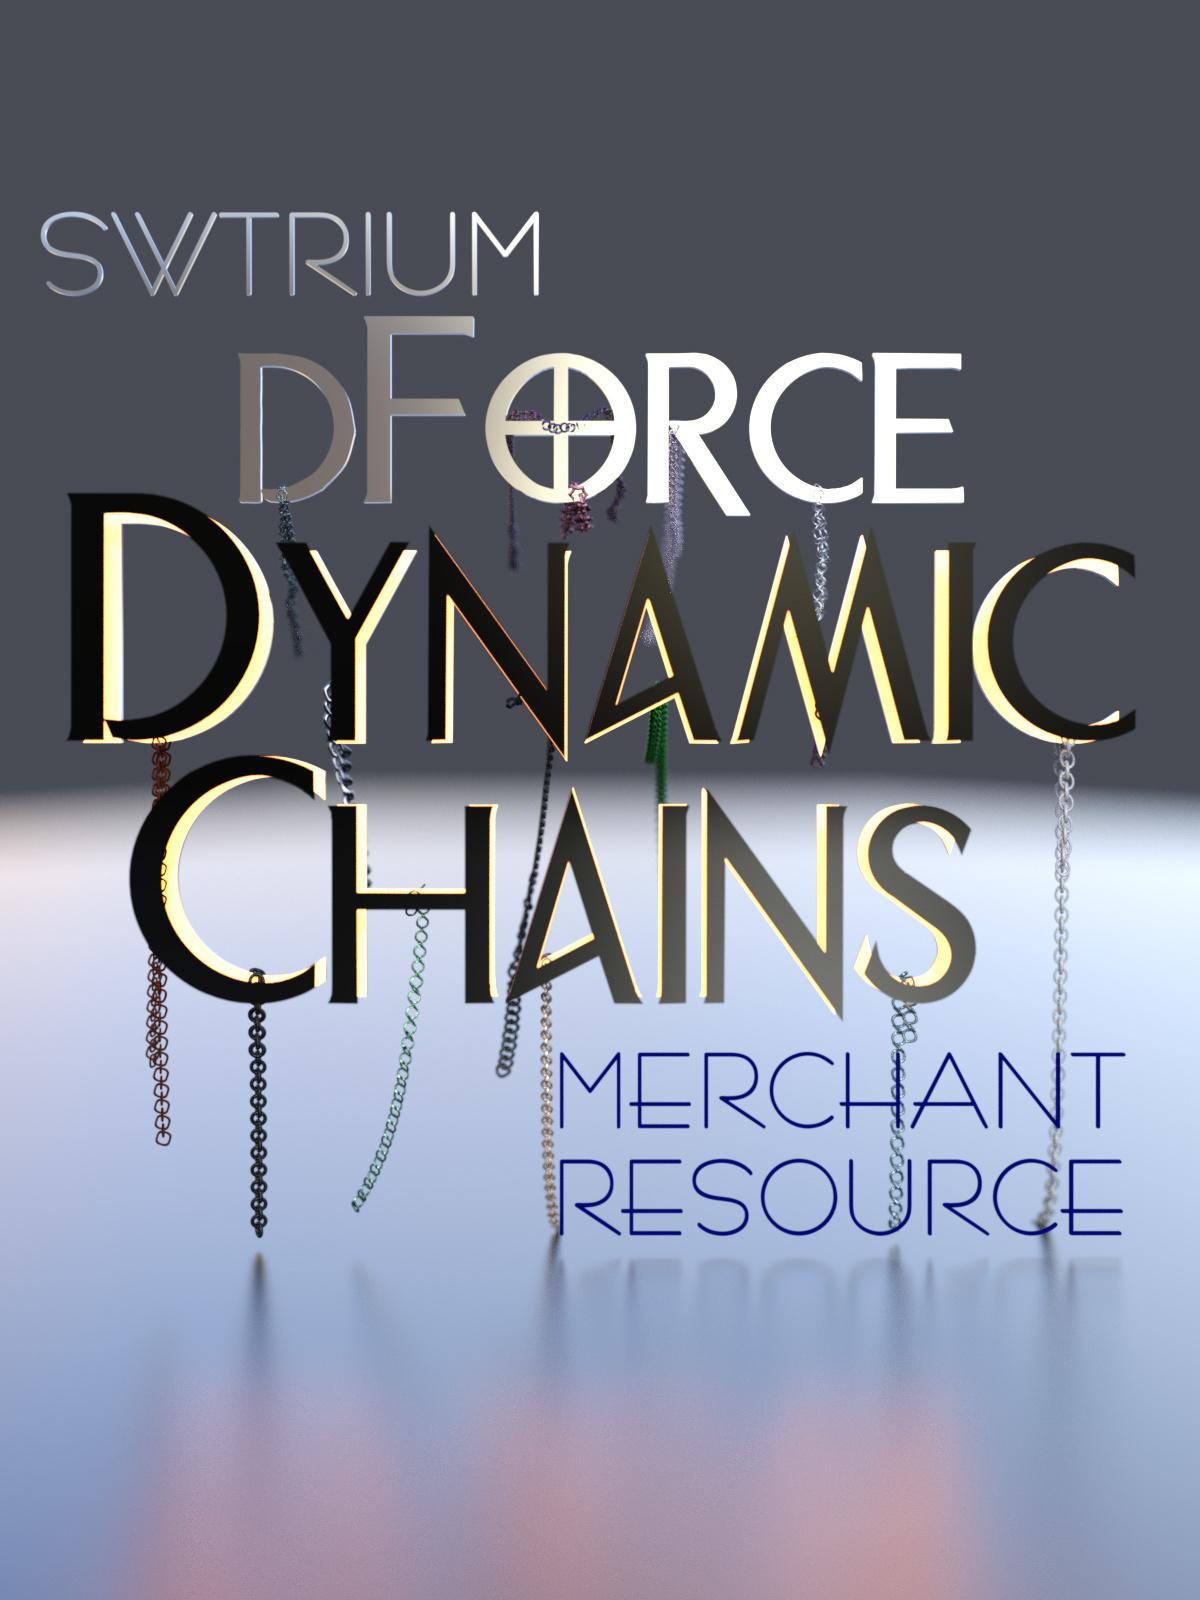 SWT dForce Dynamic Chains Merchant Resource